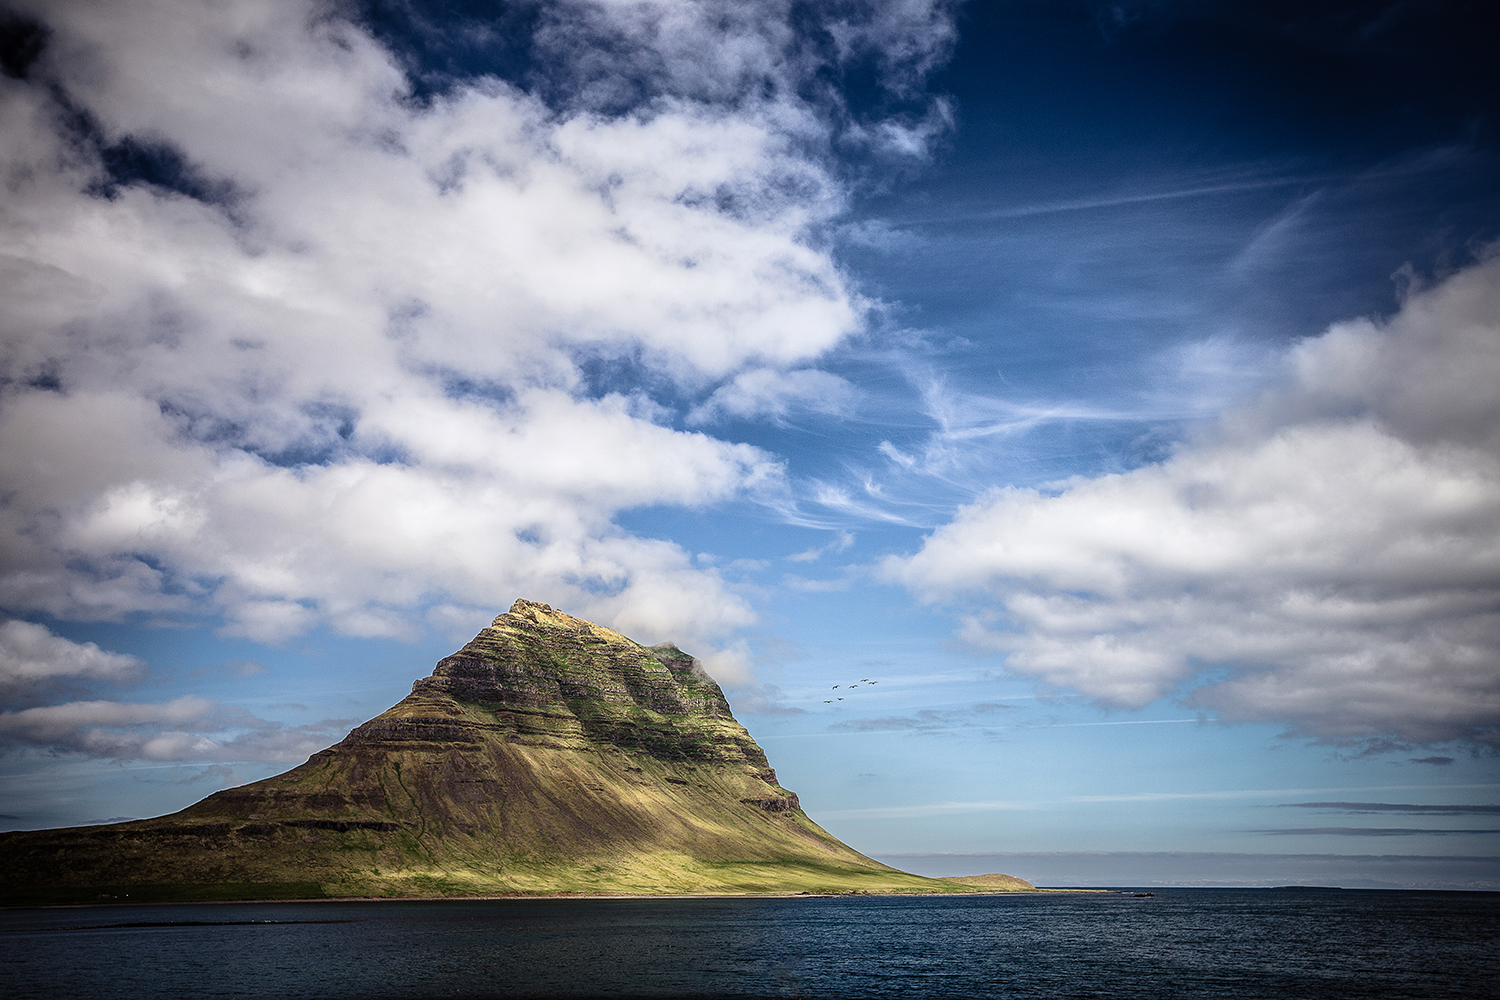 SN -IMG_1617-sophie-narses-photographe-islande-voyage-aventure-book-shooting-portrait-geneve-mariage-suisse-famille-animaux-tirages-art-cours-photo-paysages-canon